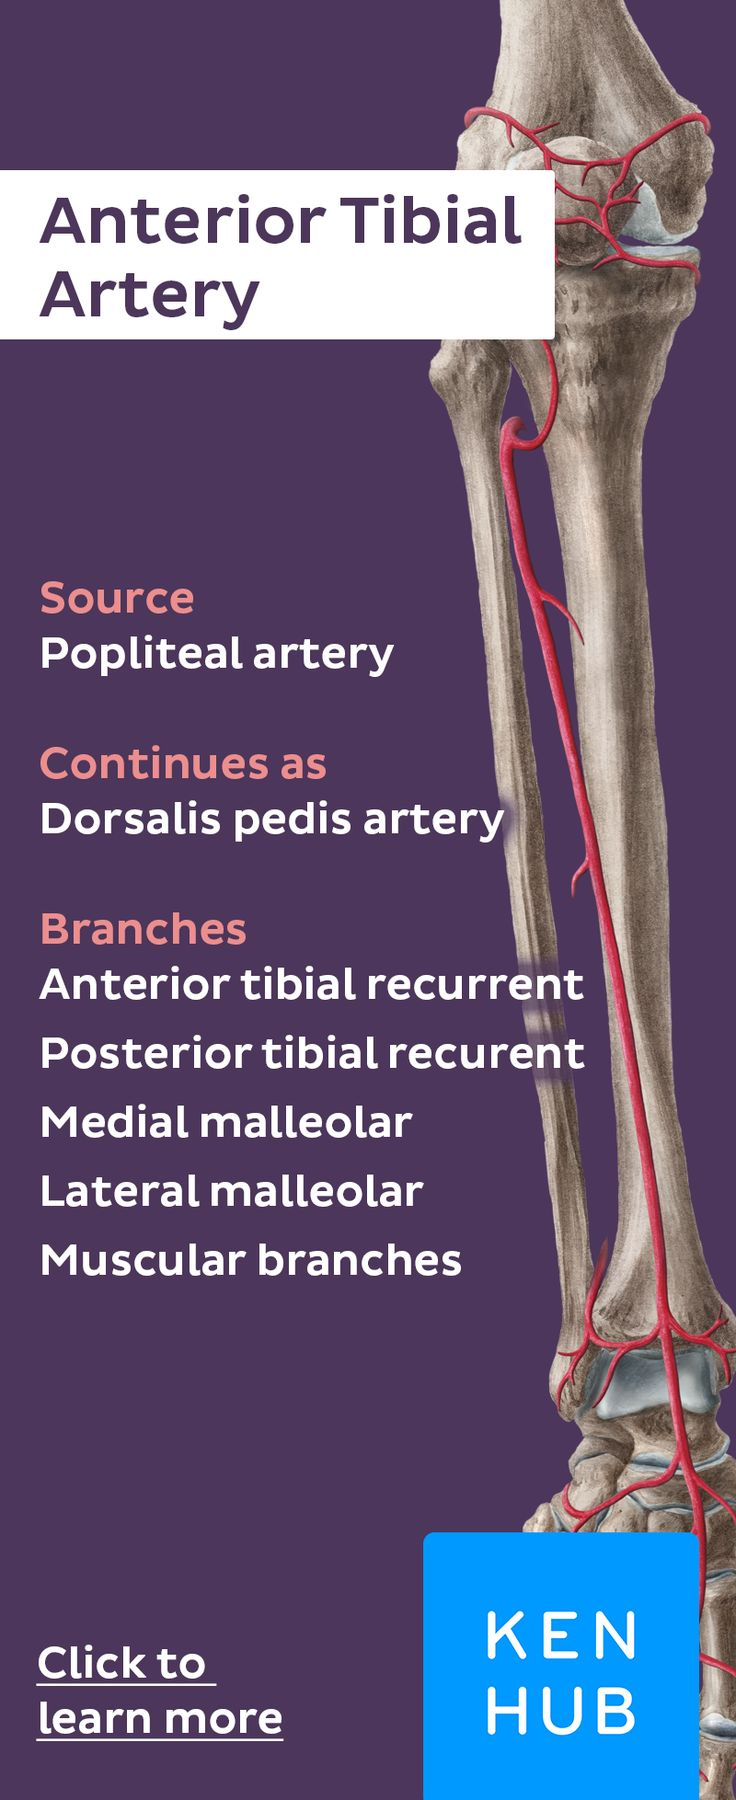 55 best Anatomía/Fisio images on Pinterest | Health, Massage and ...